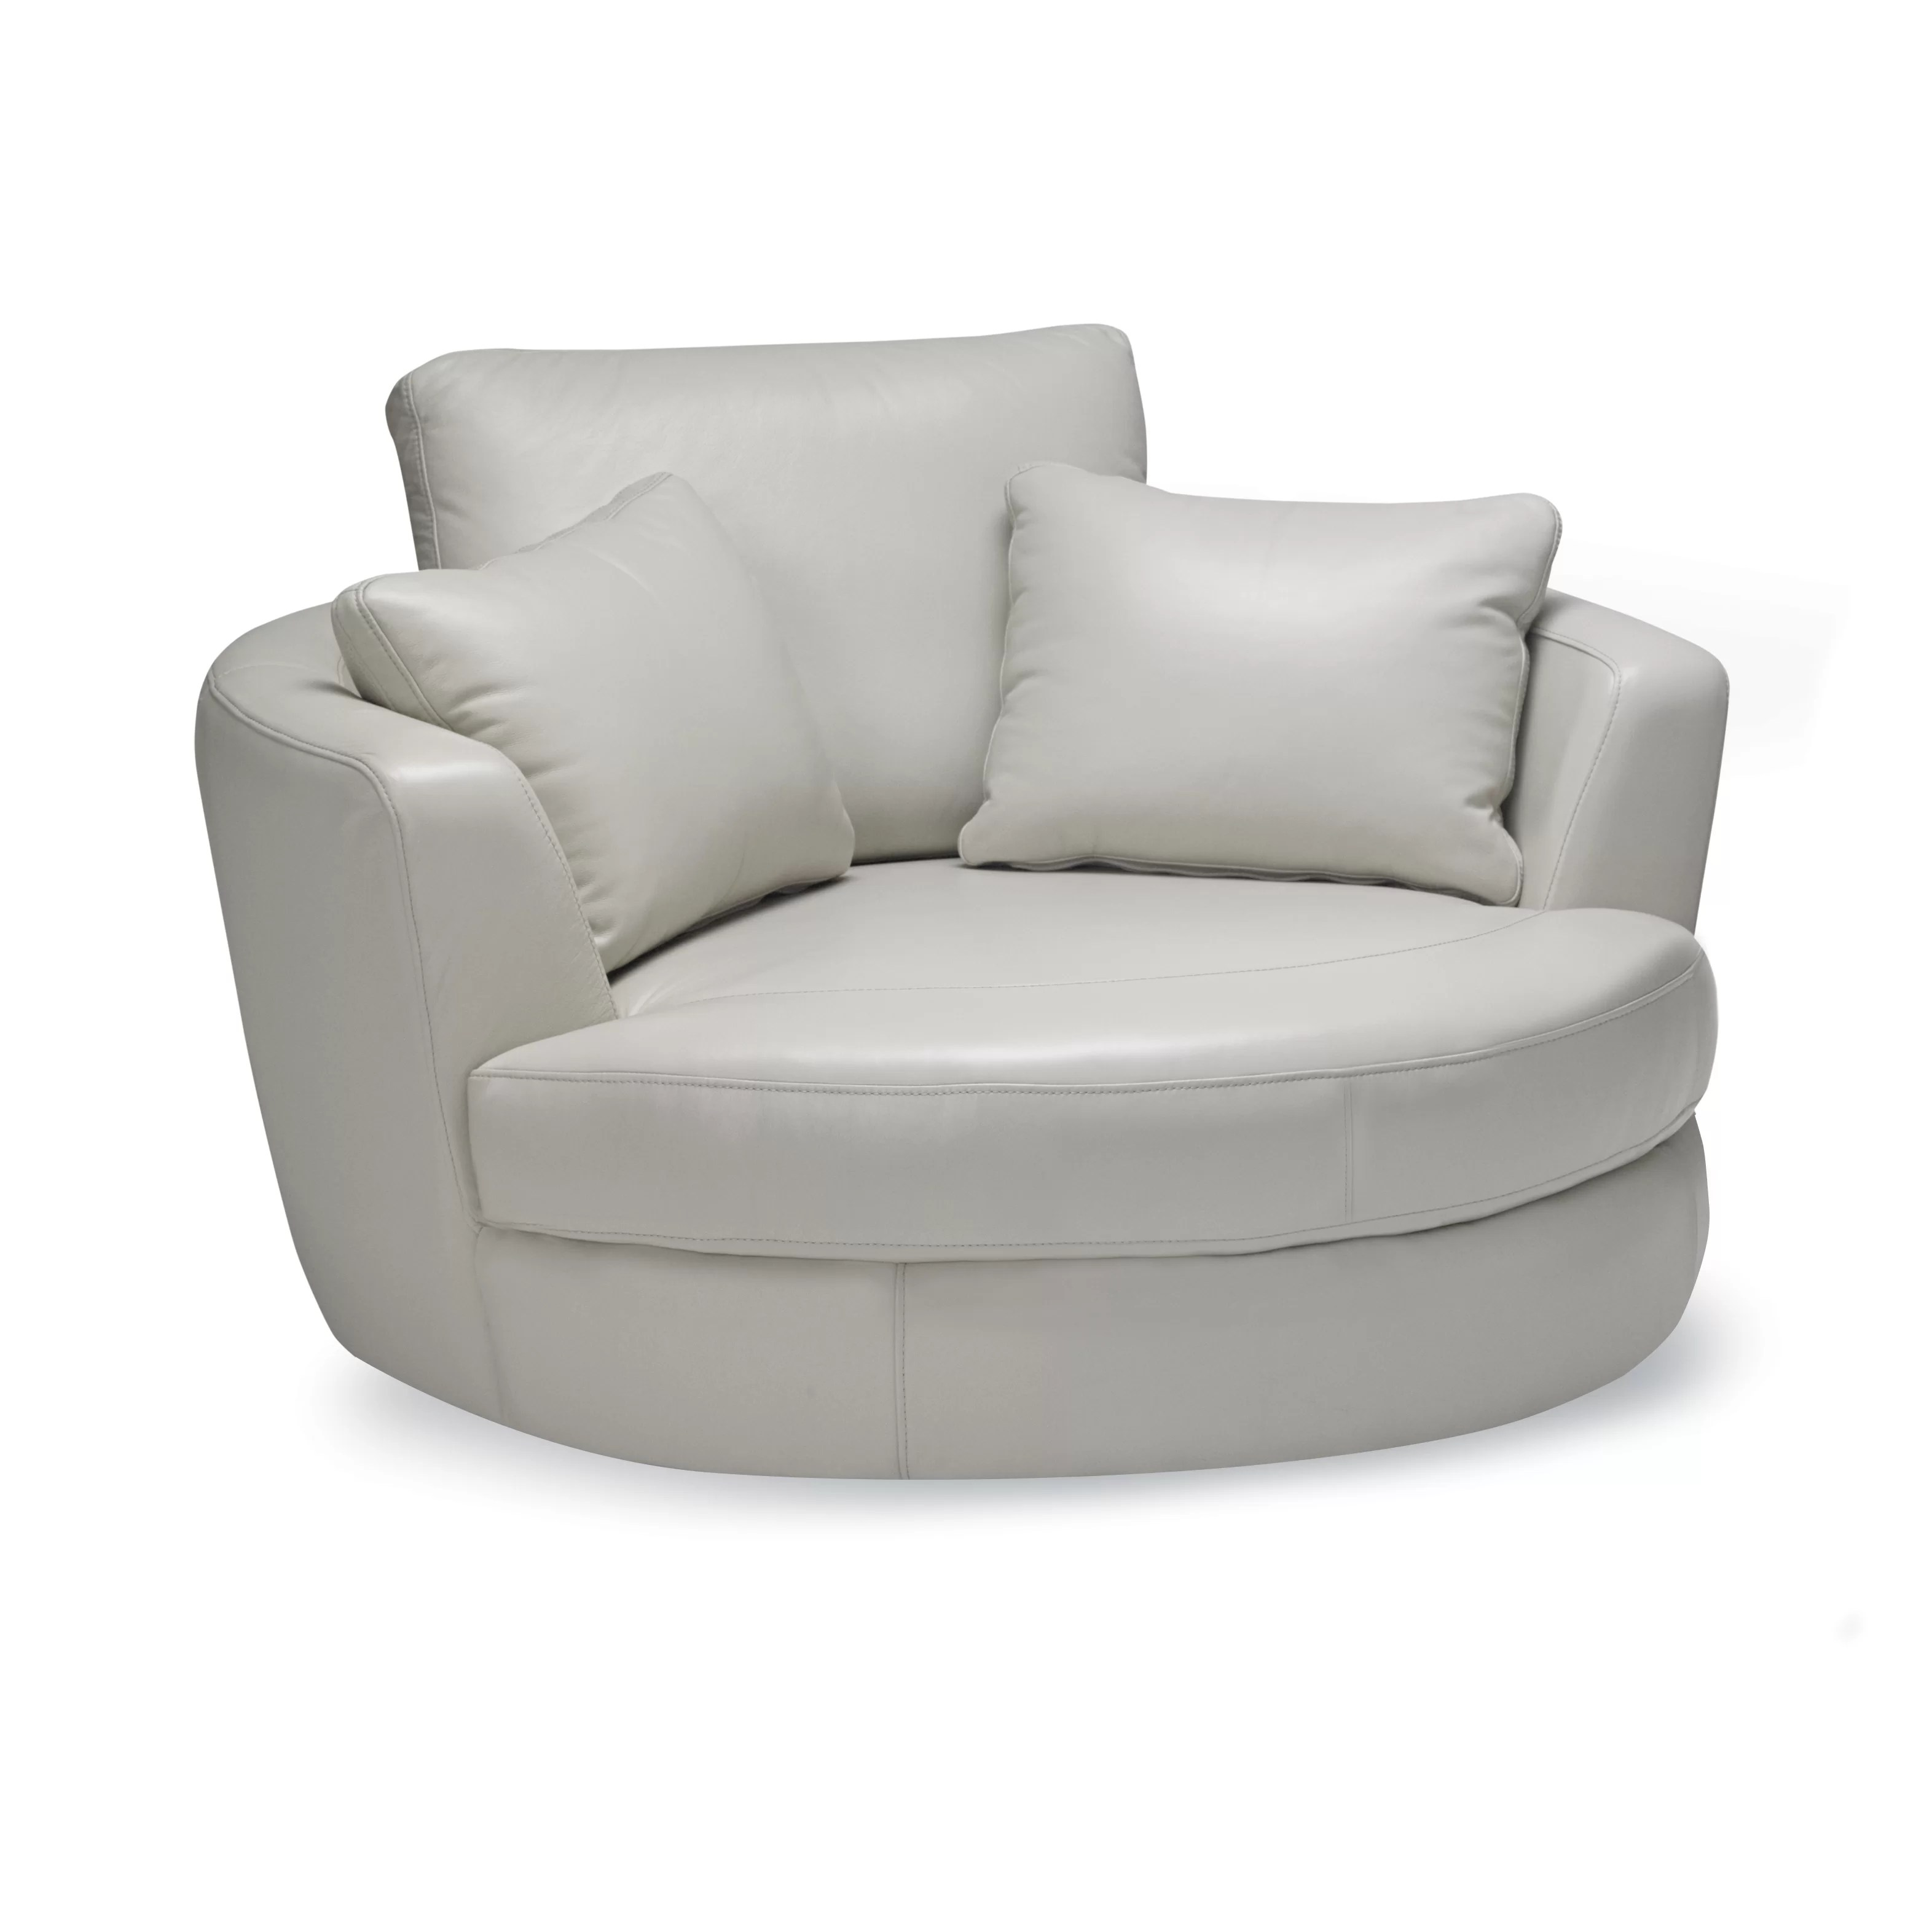 Go Chair Sofas To Go Cuddle Swivel Chair And Reviews Wayfair